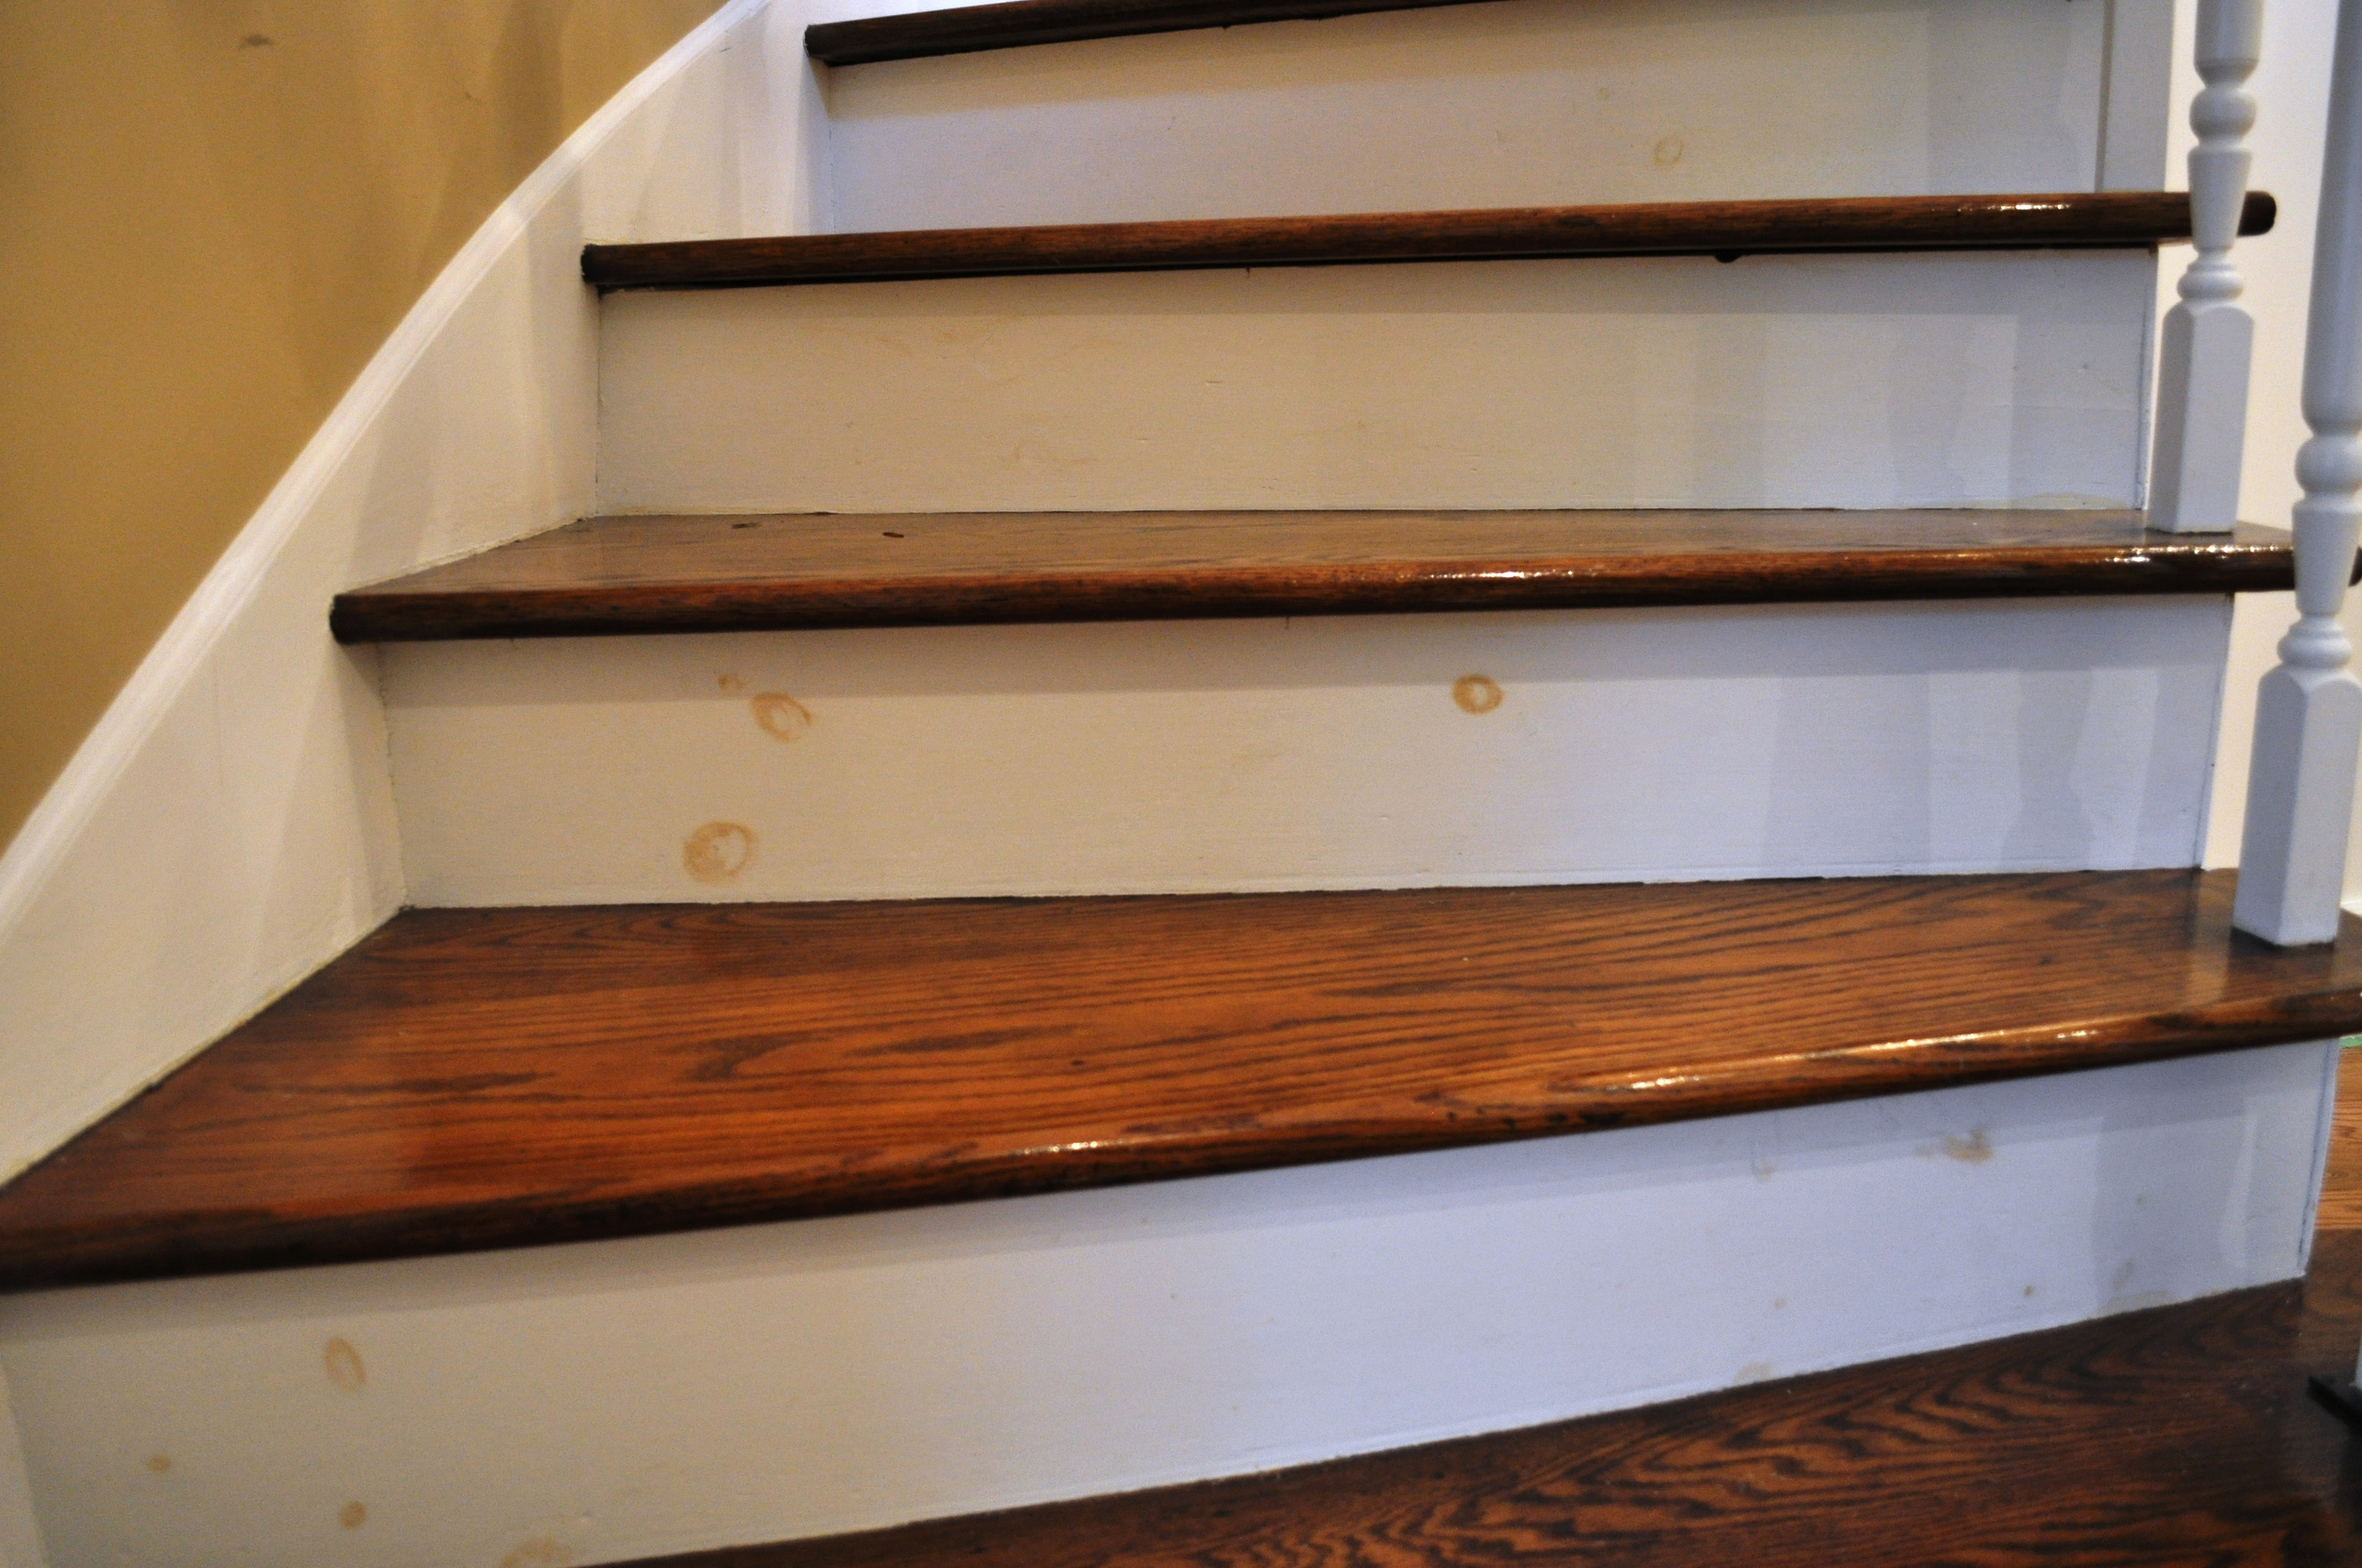 Staircase, in need of a fresh coat of paint